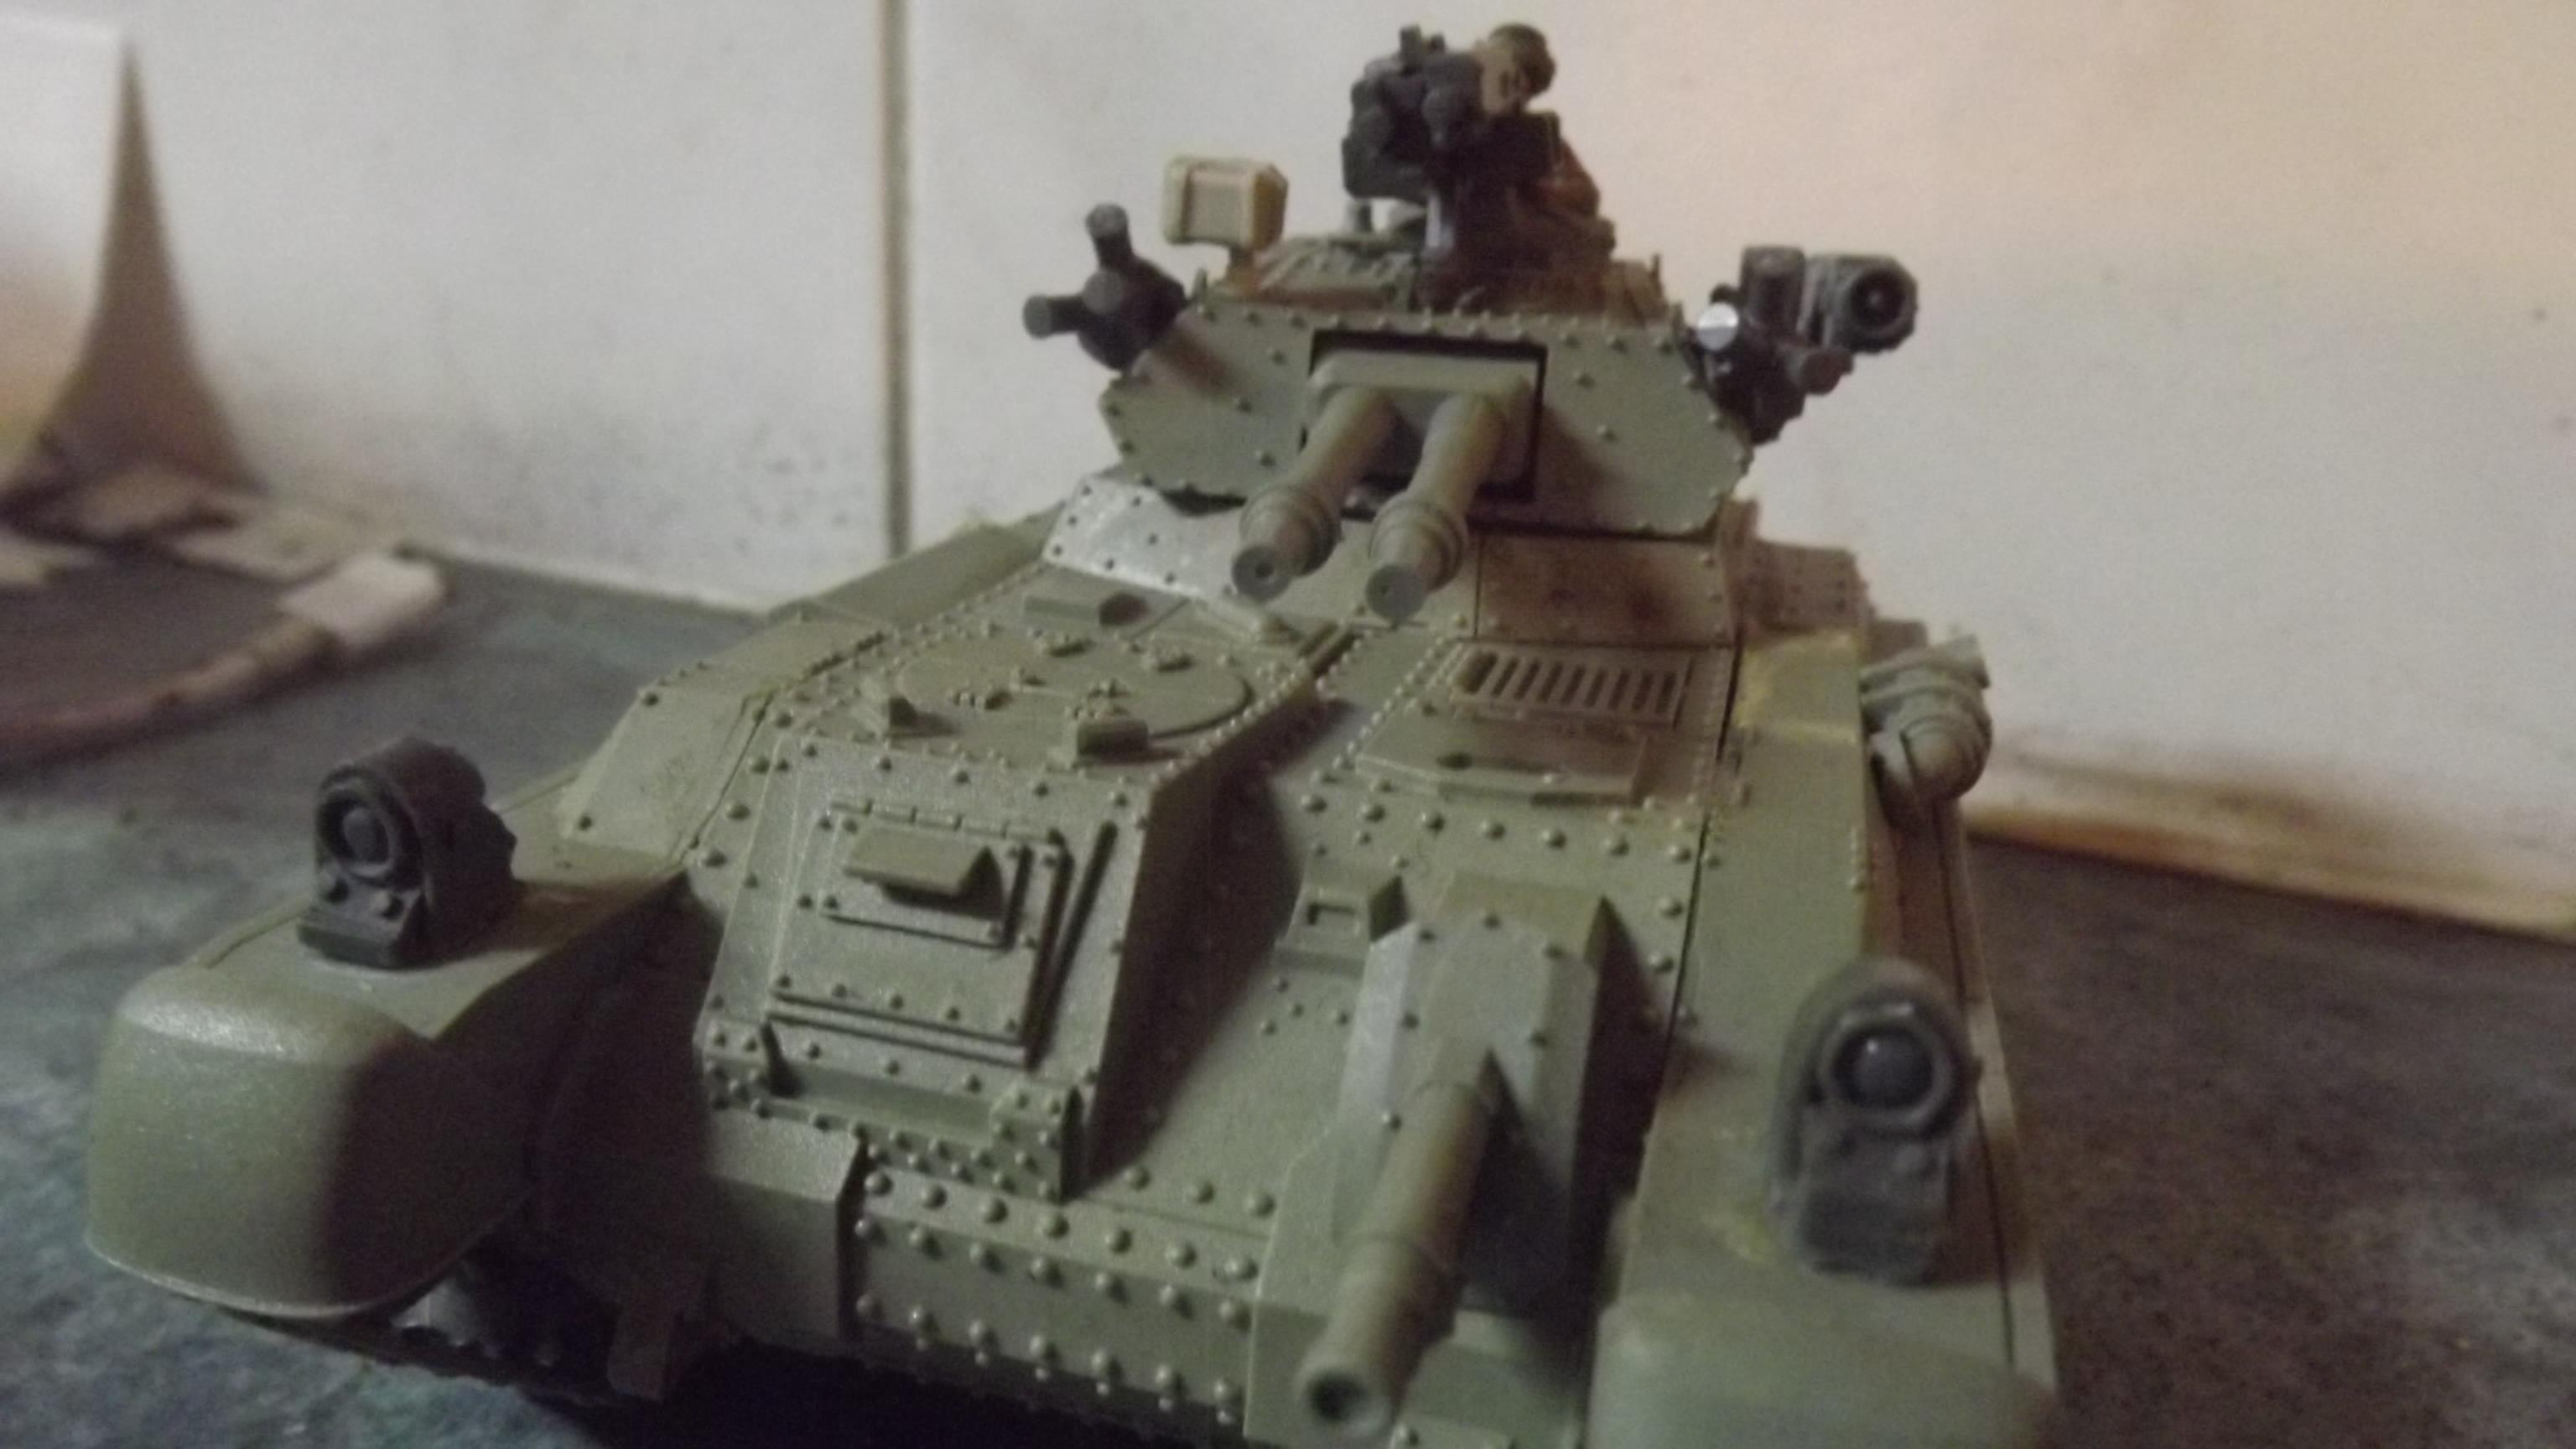 Auto Cannons, Chimera, Conversion, Ifv, Infantry Fighting Vehicle, Kangaroo, Transport, Victoria Miniatures